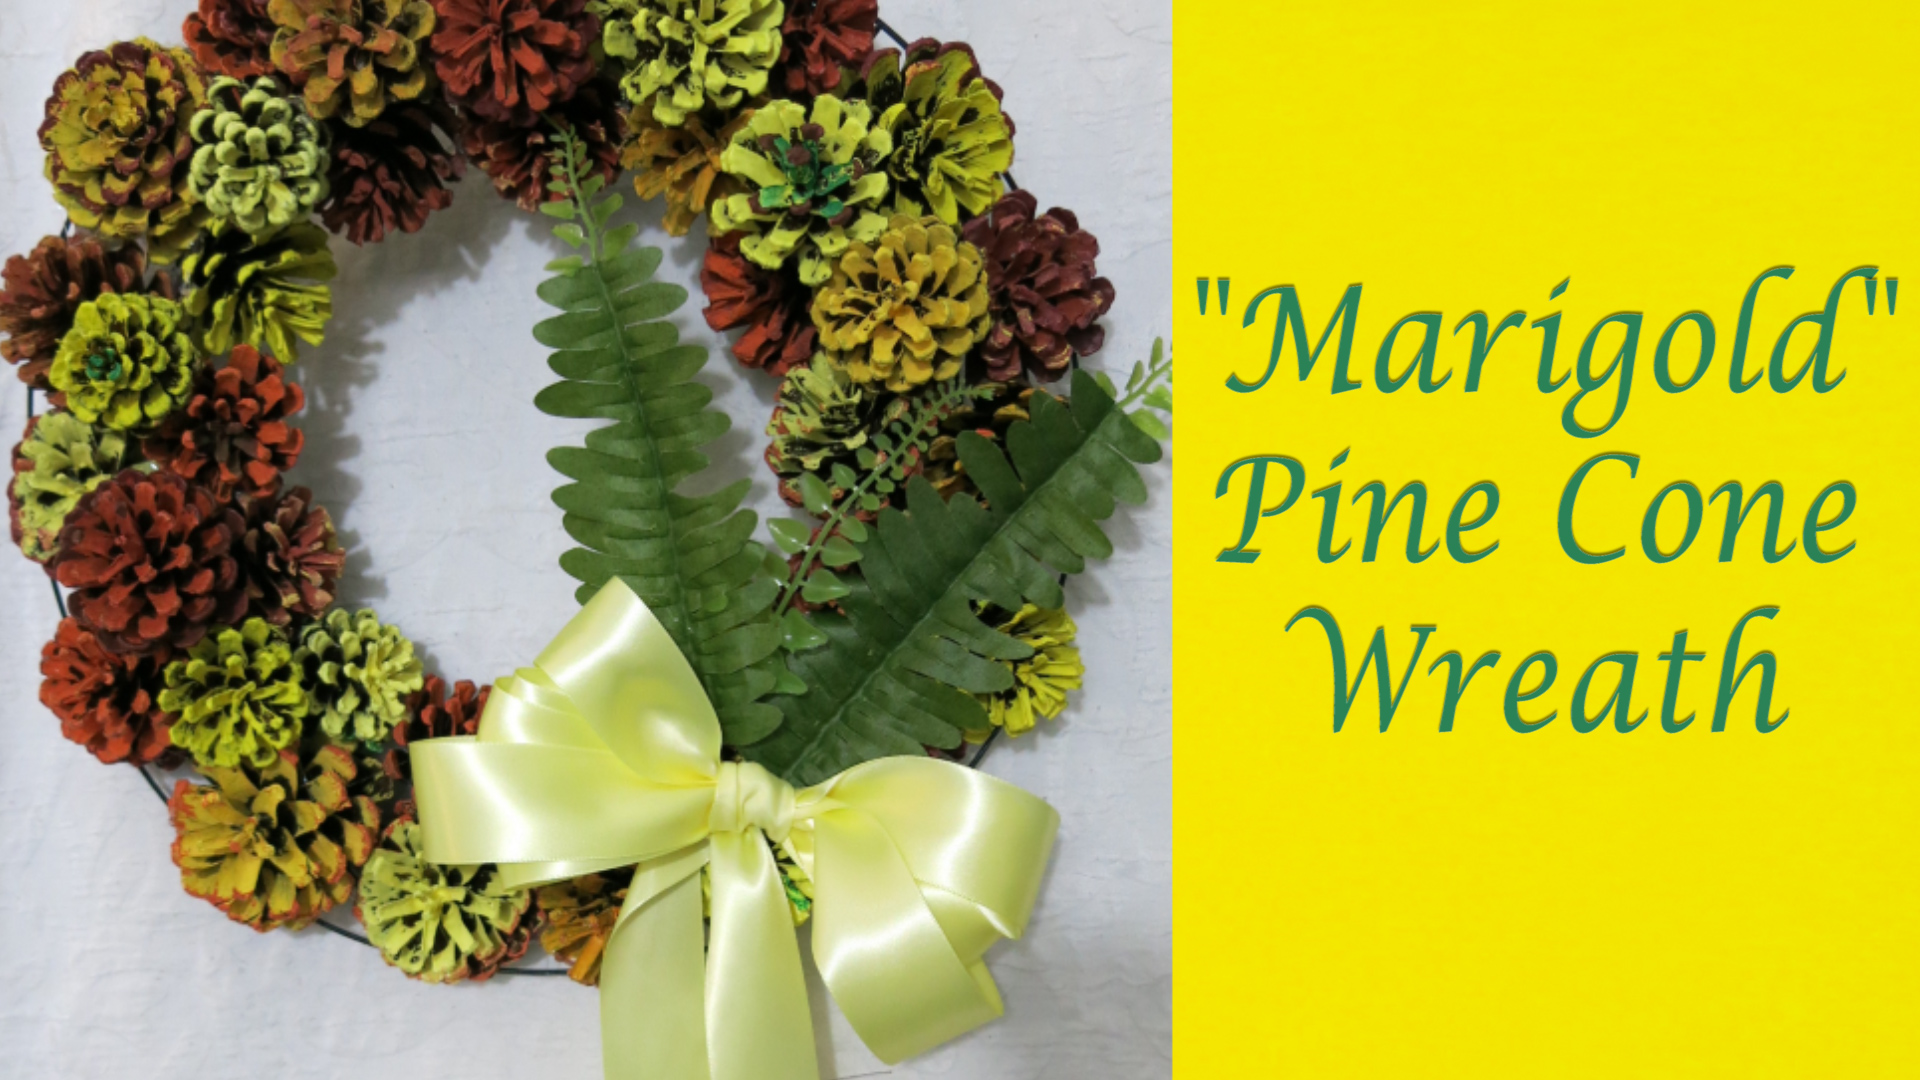 Marigold Pine Cone Wreath for Late Summer Early Fall 1.jpg